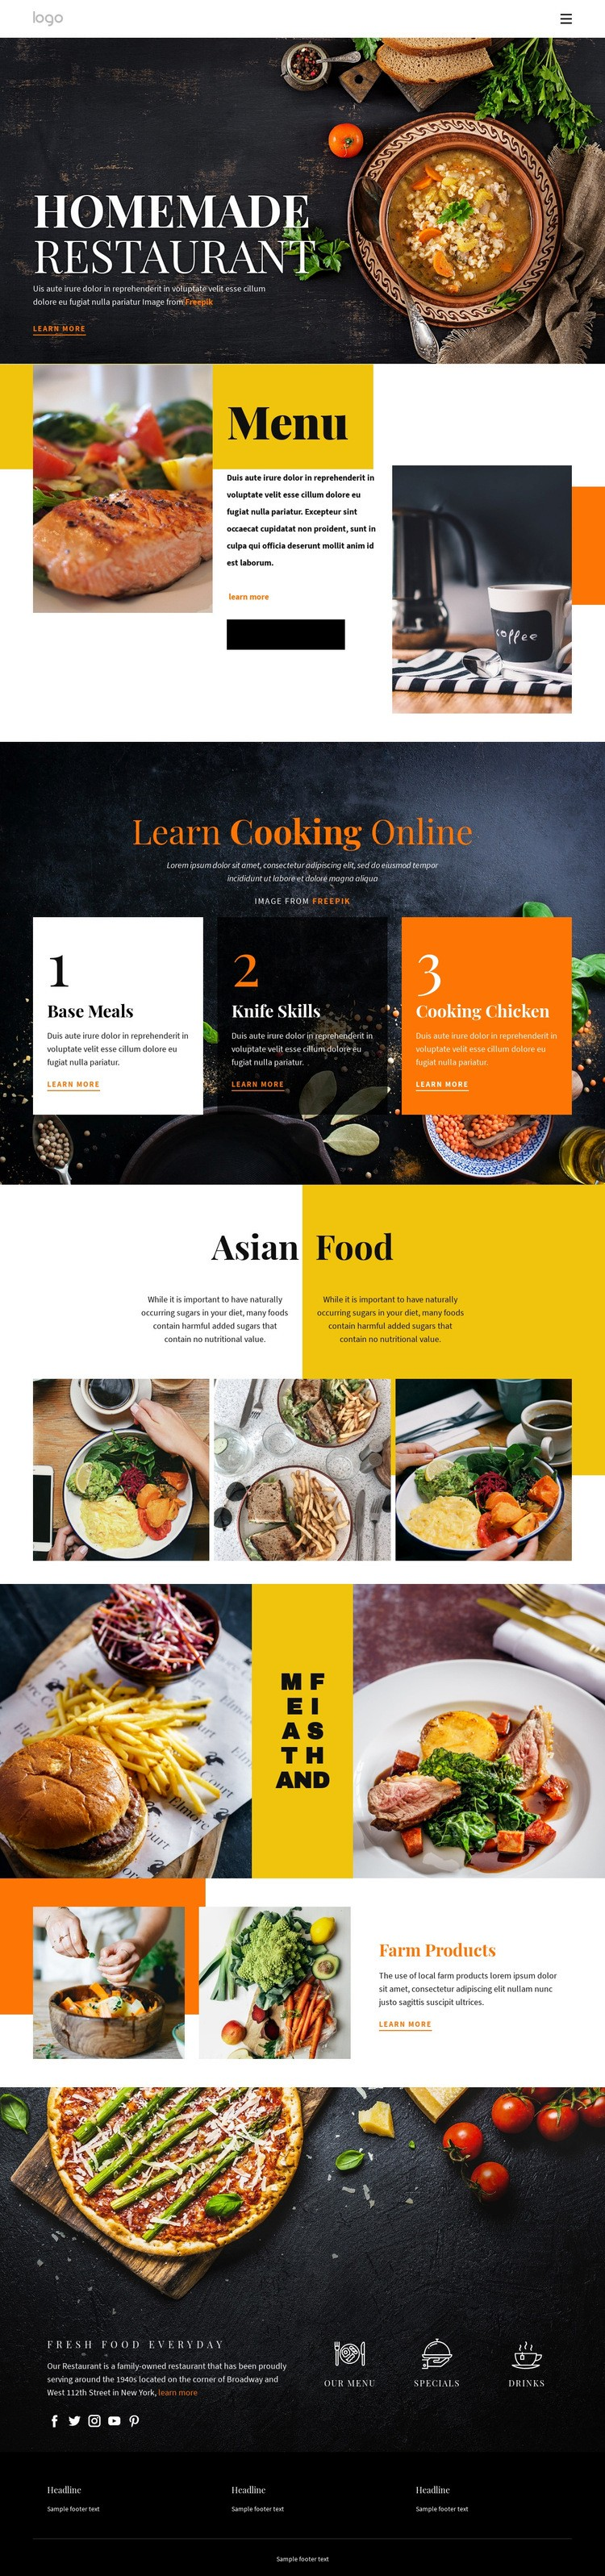 Better than home food Html Code Example